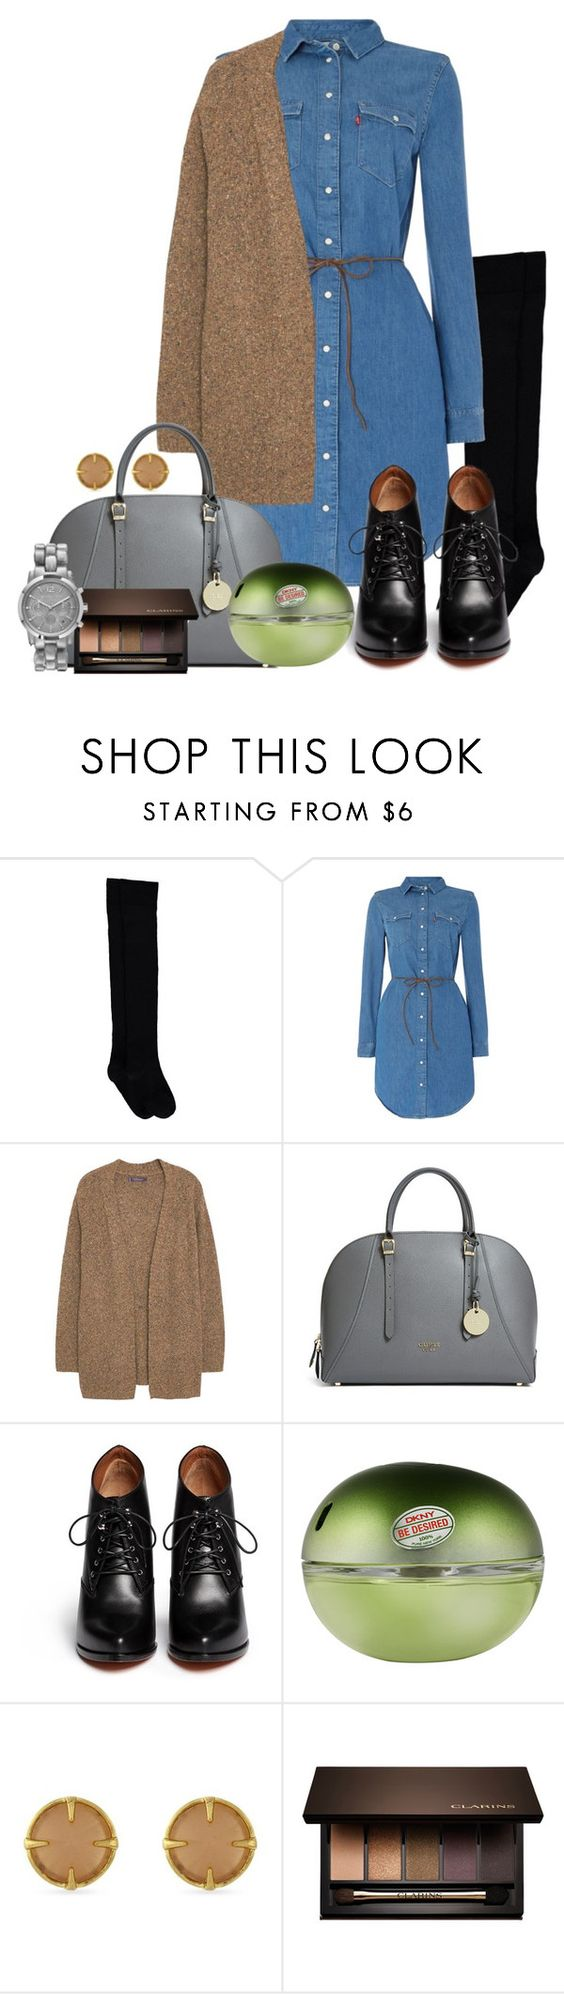 """""""Mini dress denim"""" by kimmmeo ❤ liked on Polyvore featuring Levi's, Violeta by Mango, GUESS, Givenchy, DKNY, Vince Camuto, Clarins, Michael Kors, women's clothing and women"""